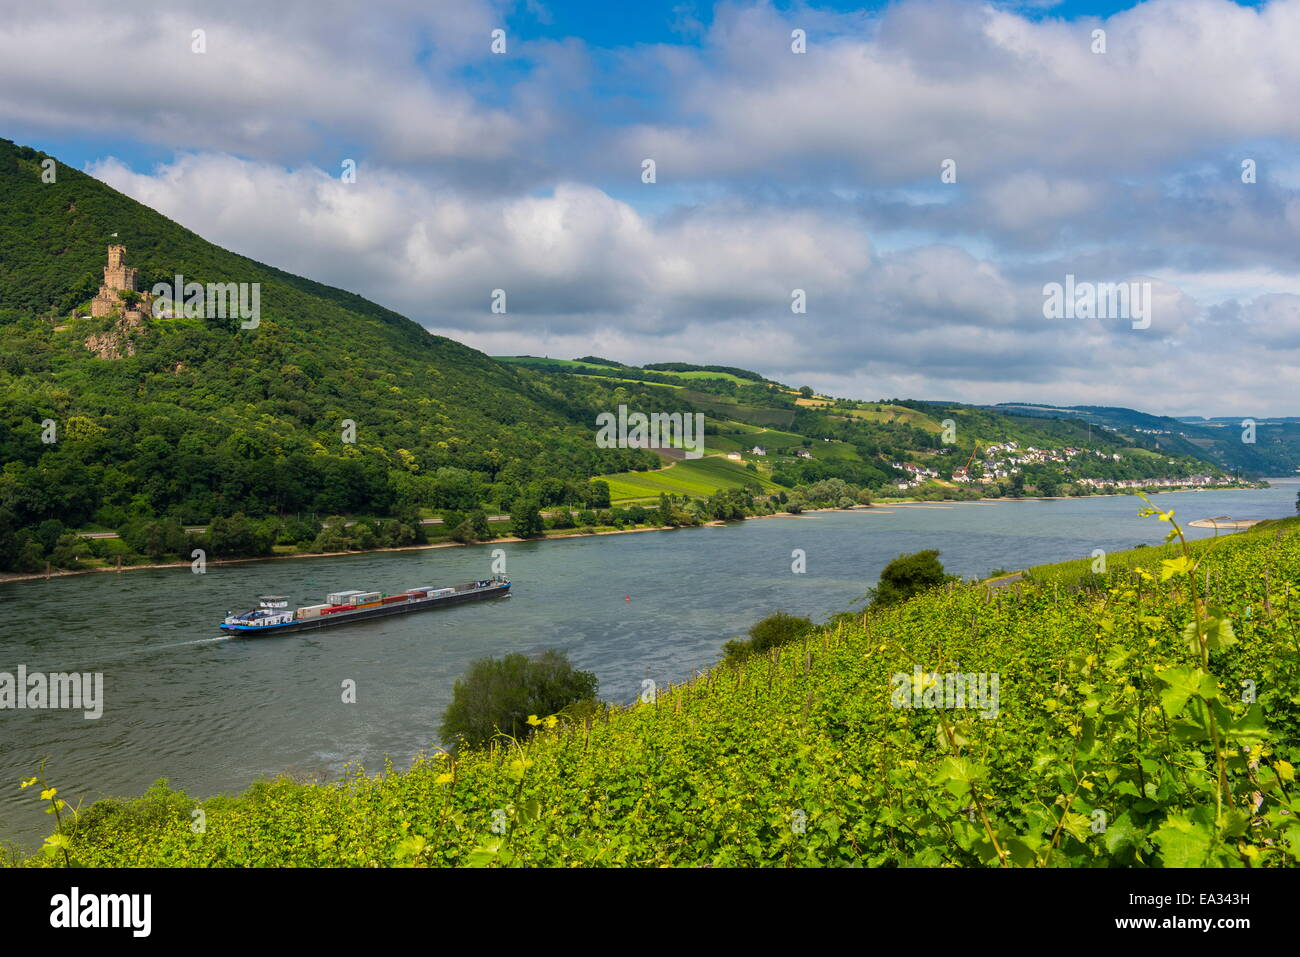 Cargo boat passing Castle Sooneck on the River Rhine, Niederheimbach. Upper Rhine Valley, UNESCO Site, Hesse, Germany - Stock Image